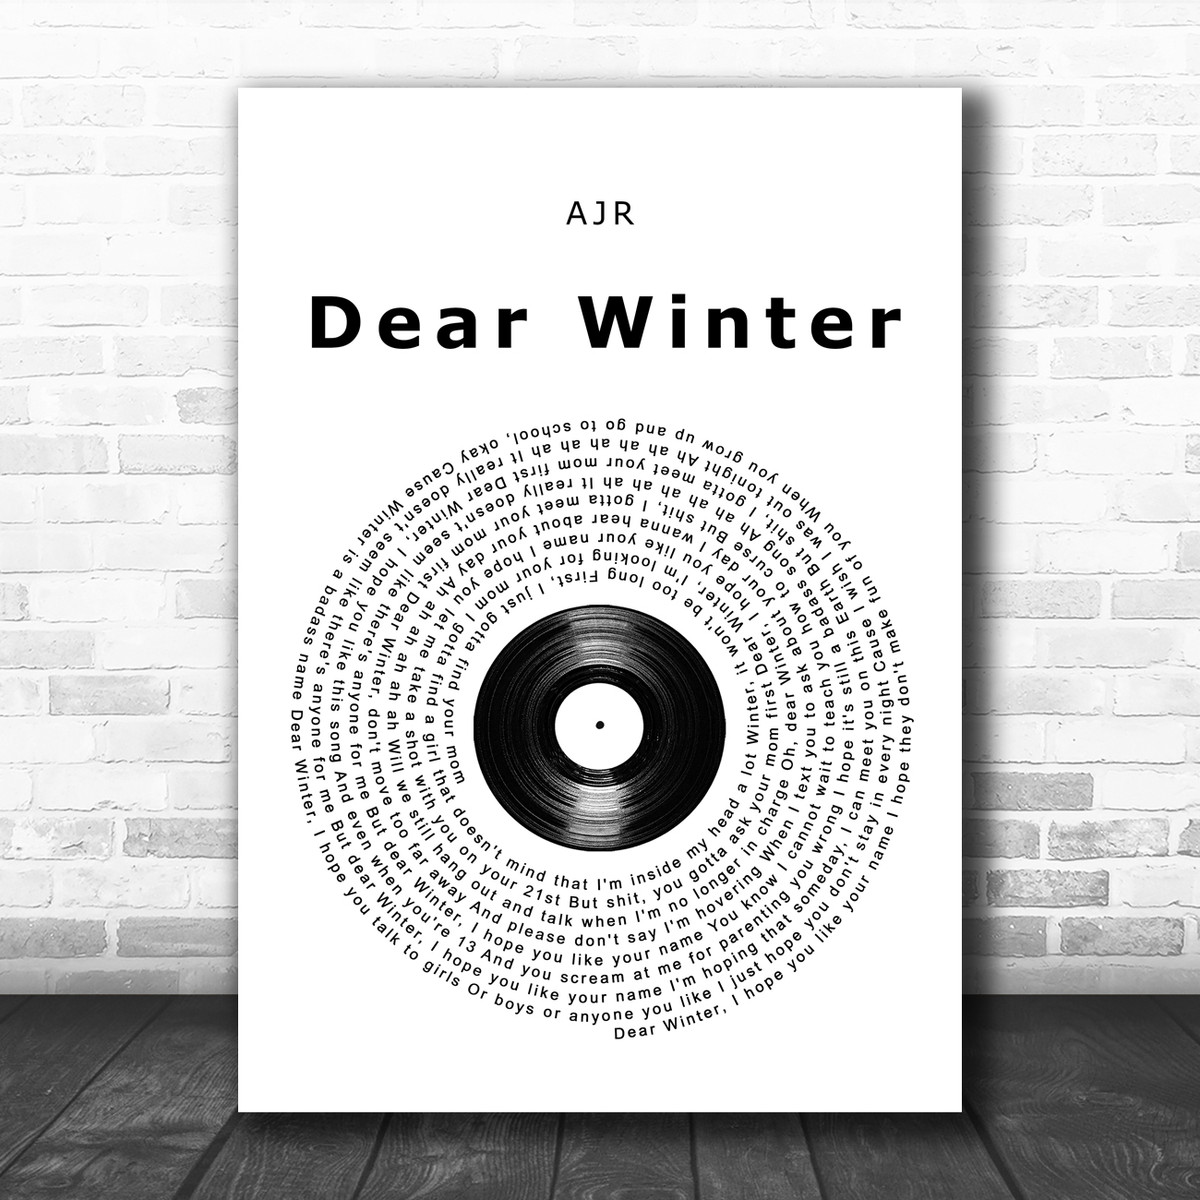 Ajr Dear Winter Vinyl Record Song Lyric Wall Art Print Song Lyric Designs Stream dear winter by ajr from desktop or your mobile device. ajr dear winter vinyl record song lyric wall art print